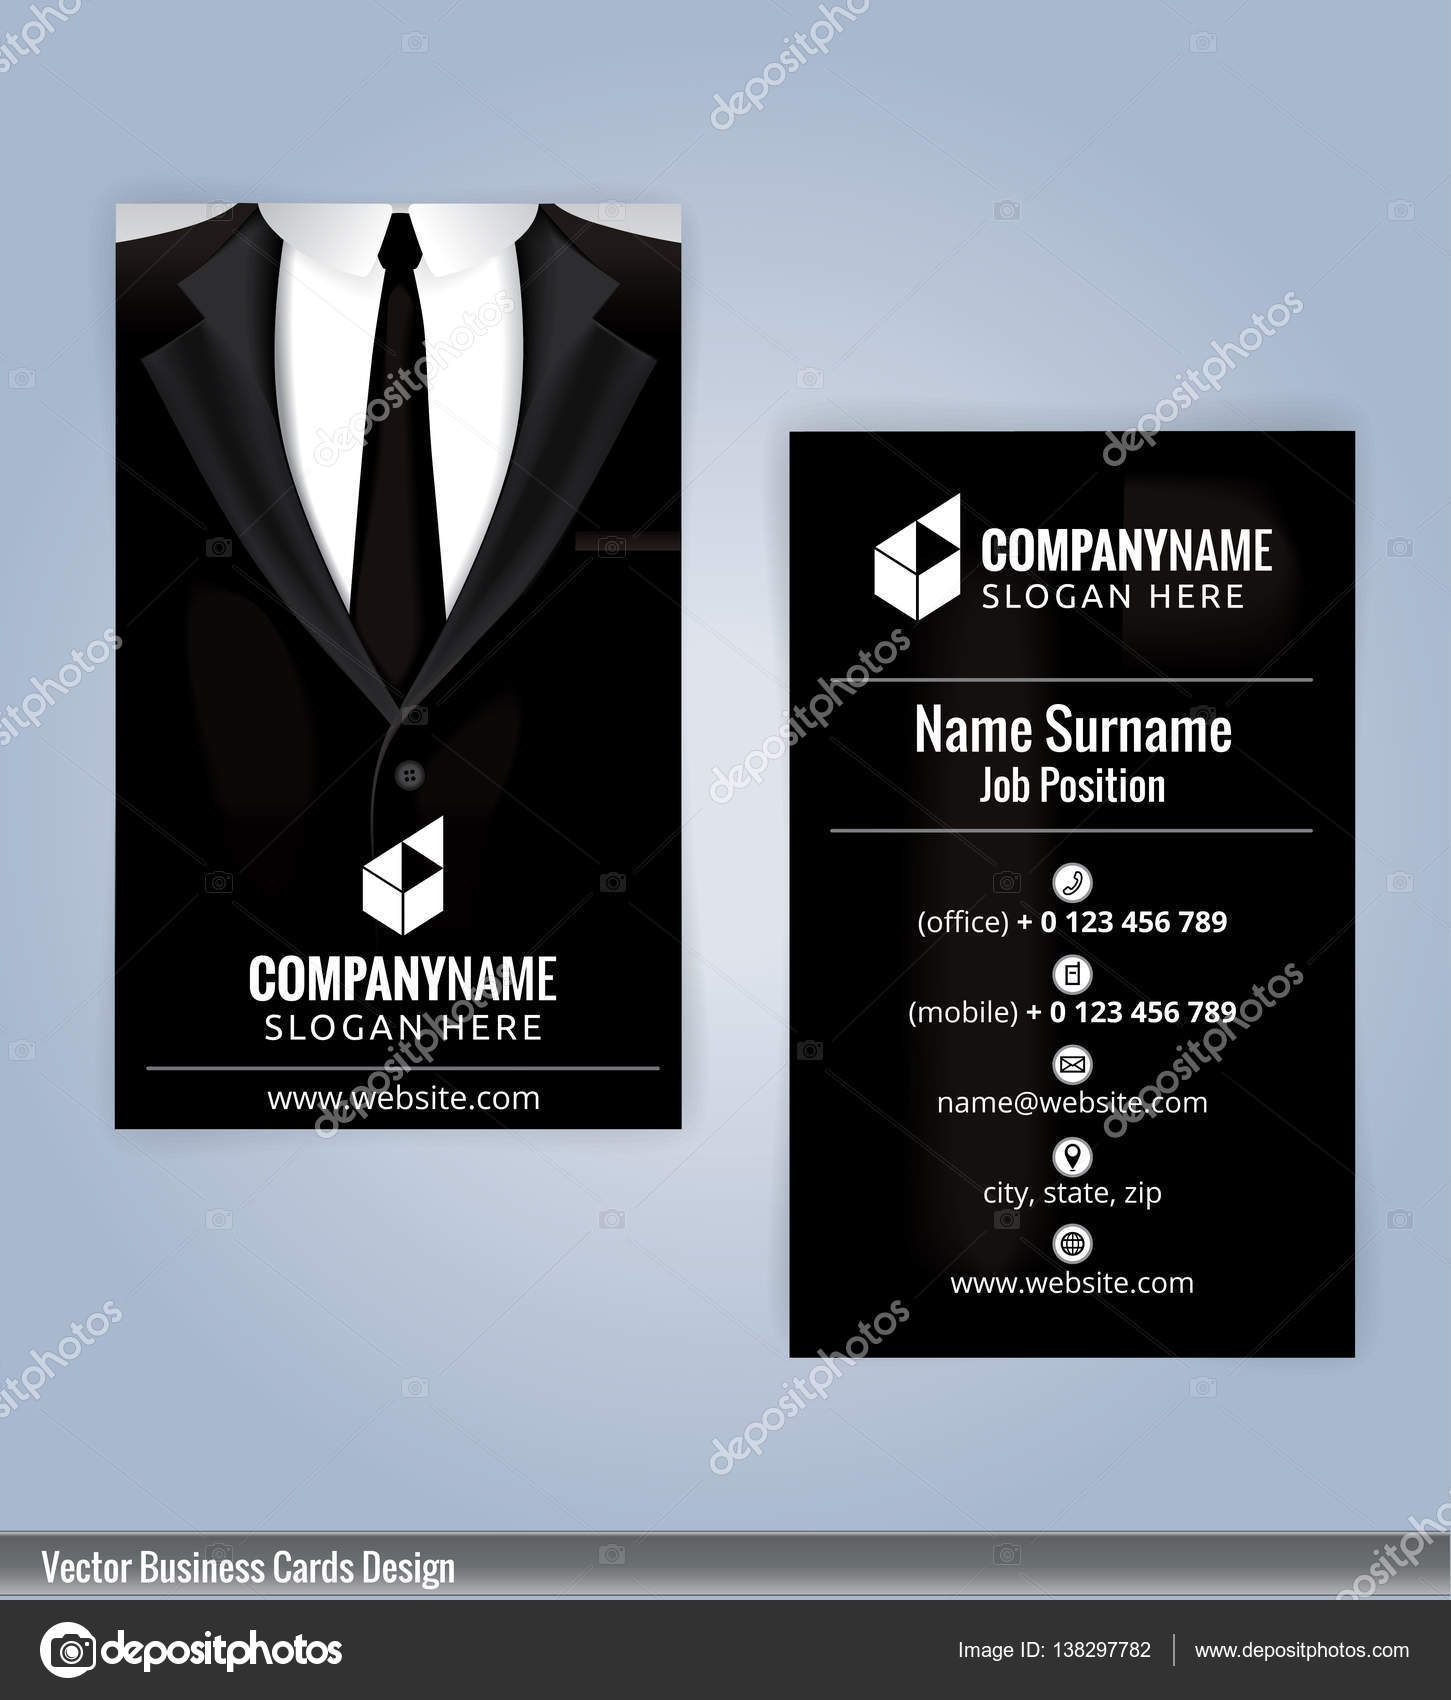 Business card template suits background business card design business card template suits background business card design modern business card illustration colourmoves